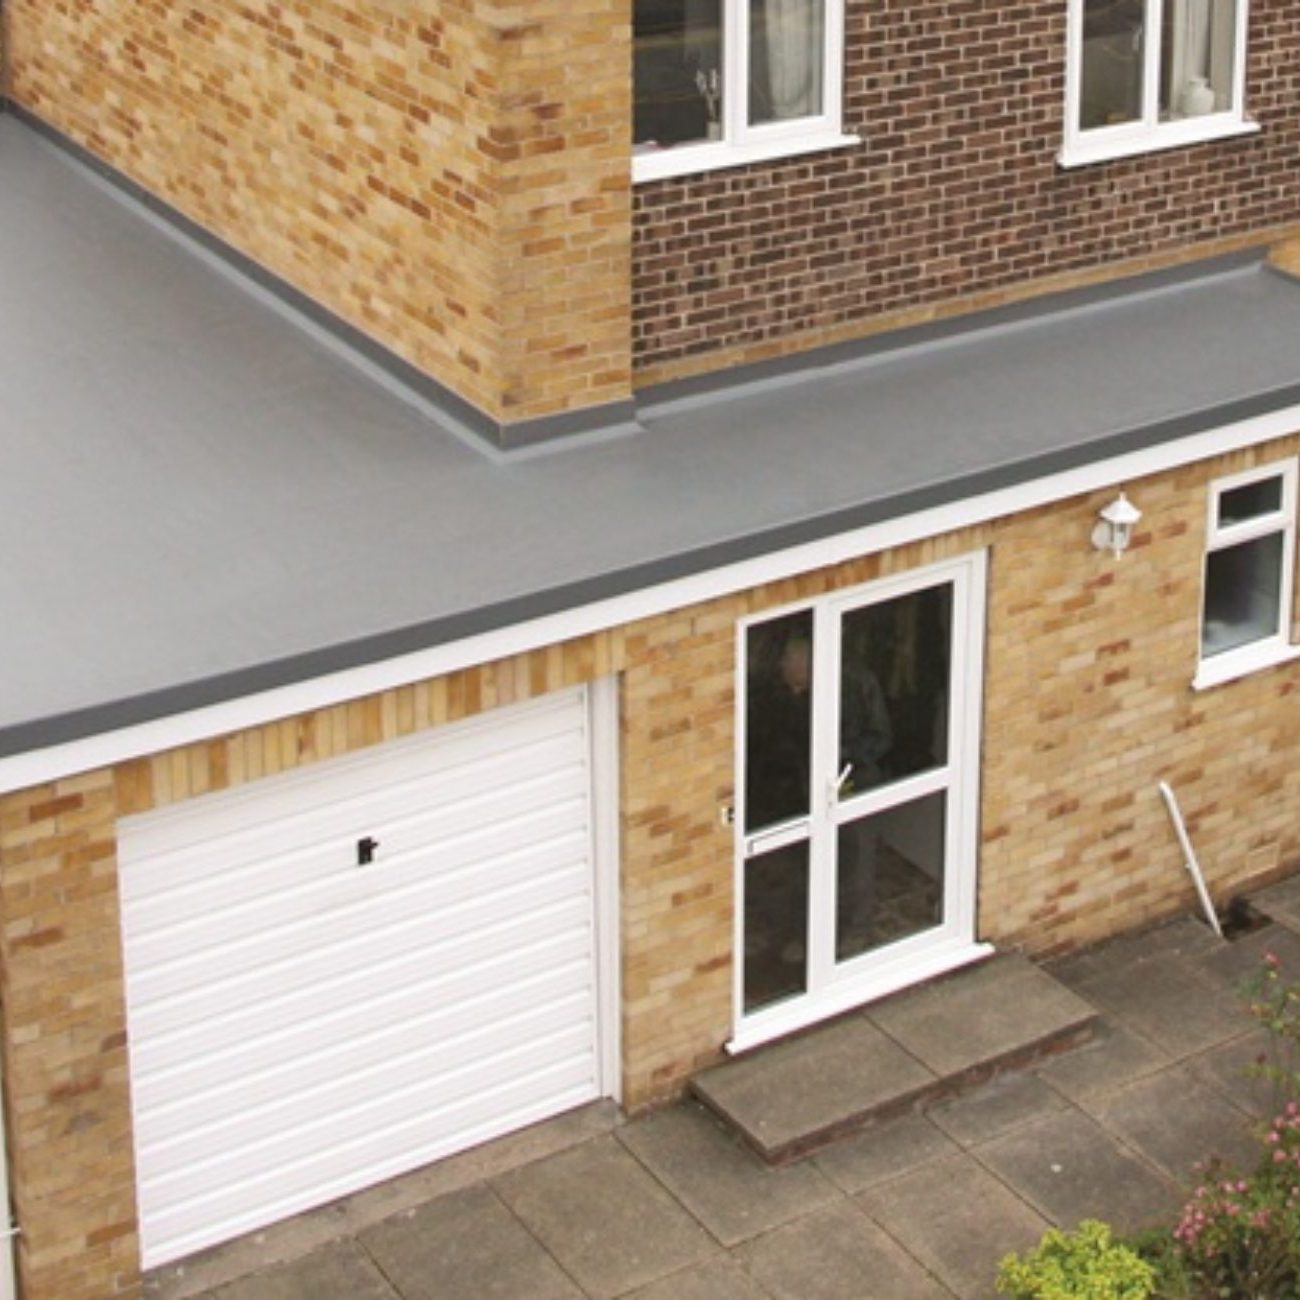 About Us Peter Dodds Roofing Maintenance Ltd